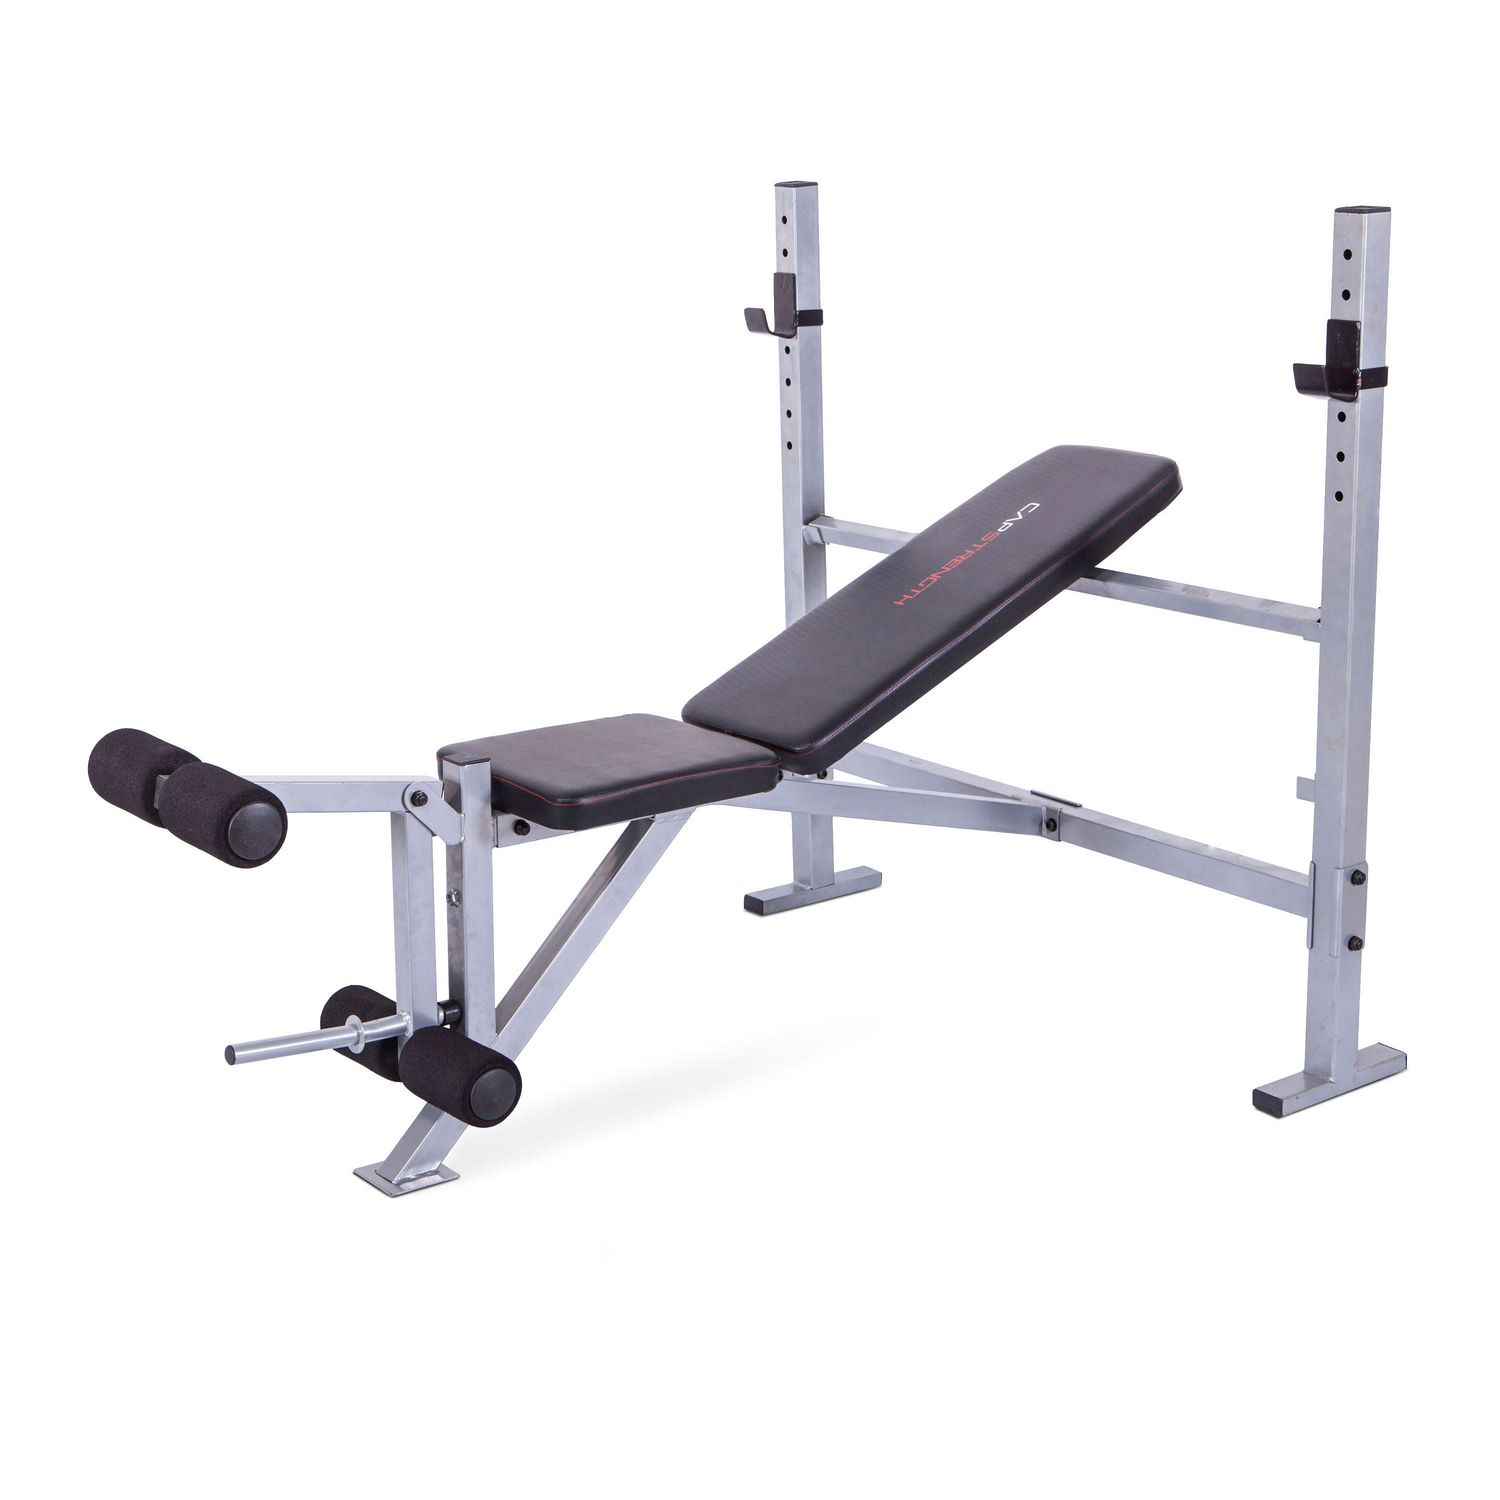 weight and duty kustom uk products deluxe equipment bench gym adjustable heavy weights commercial kit